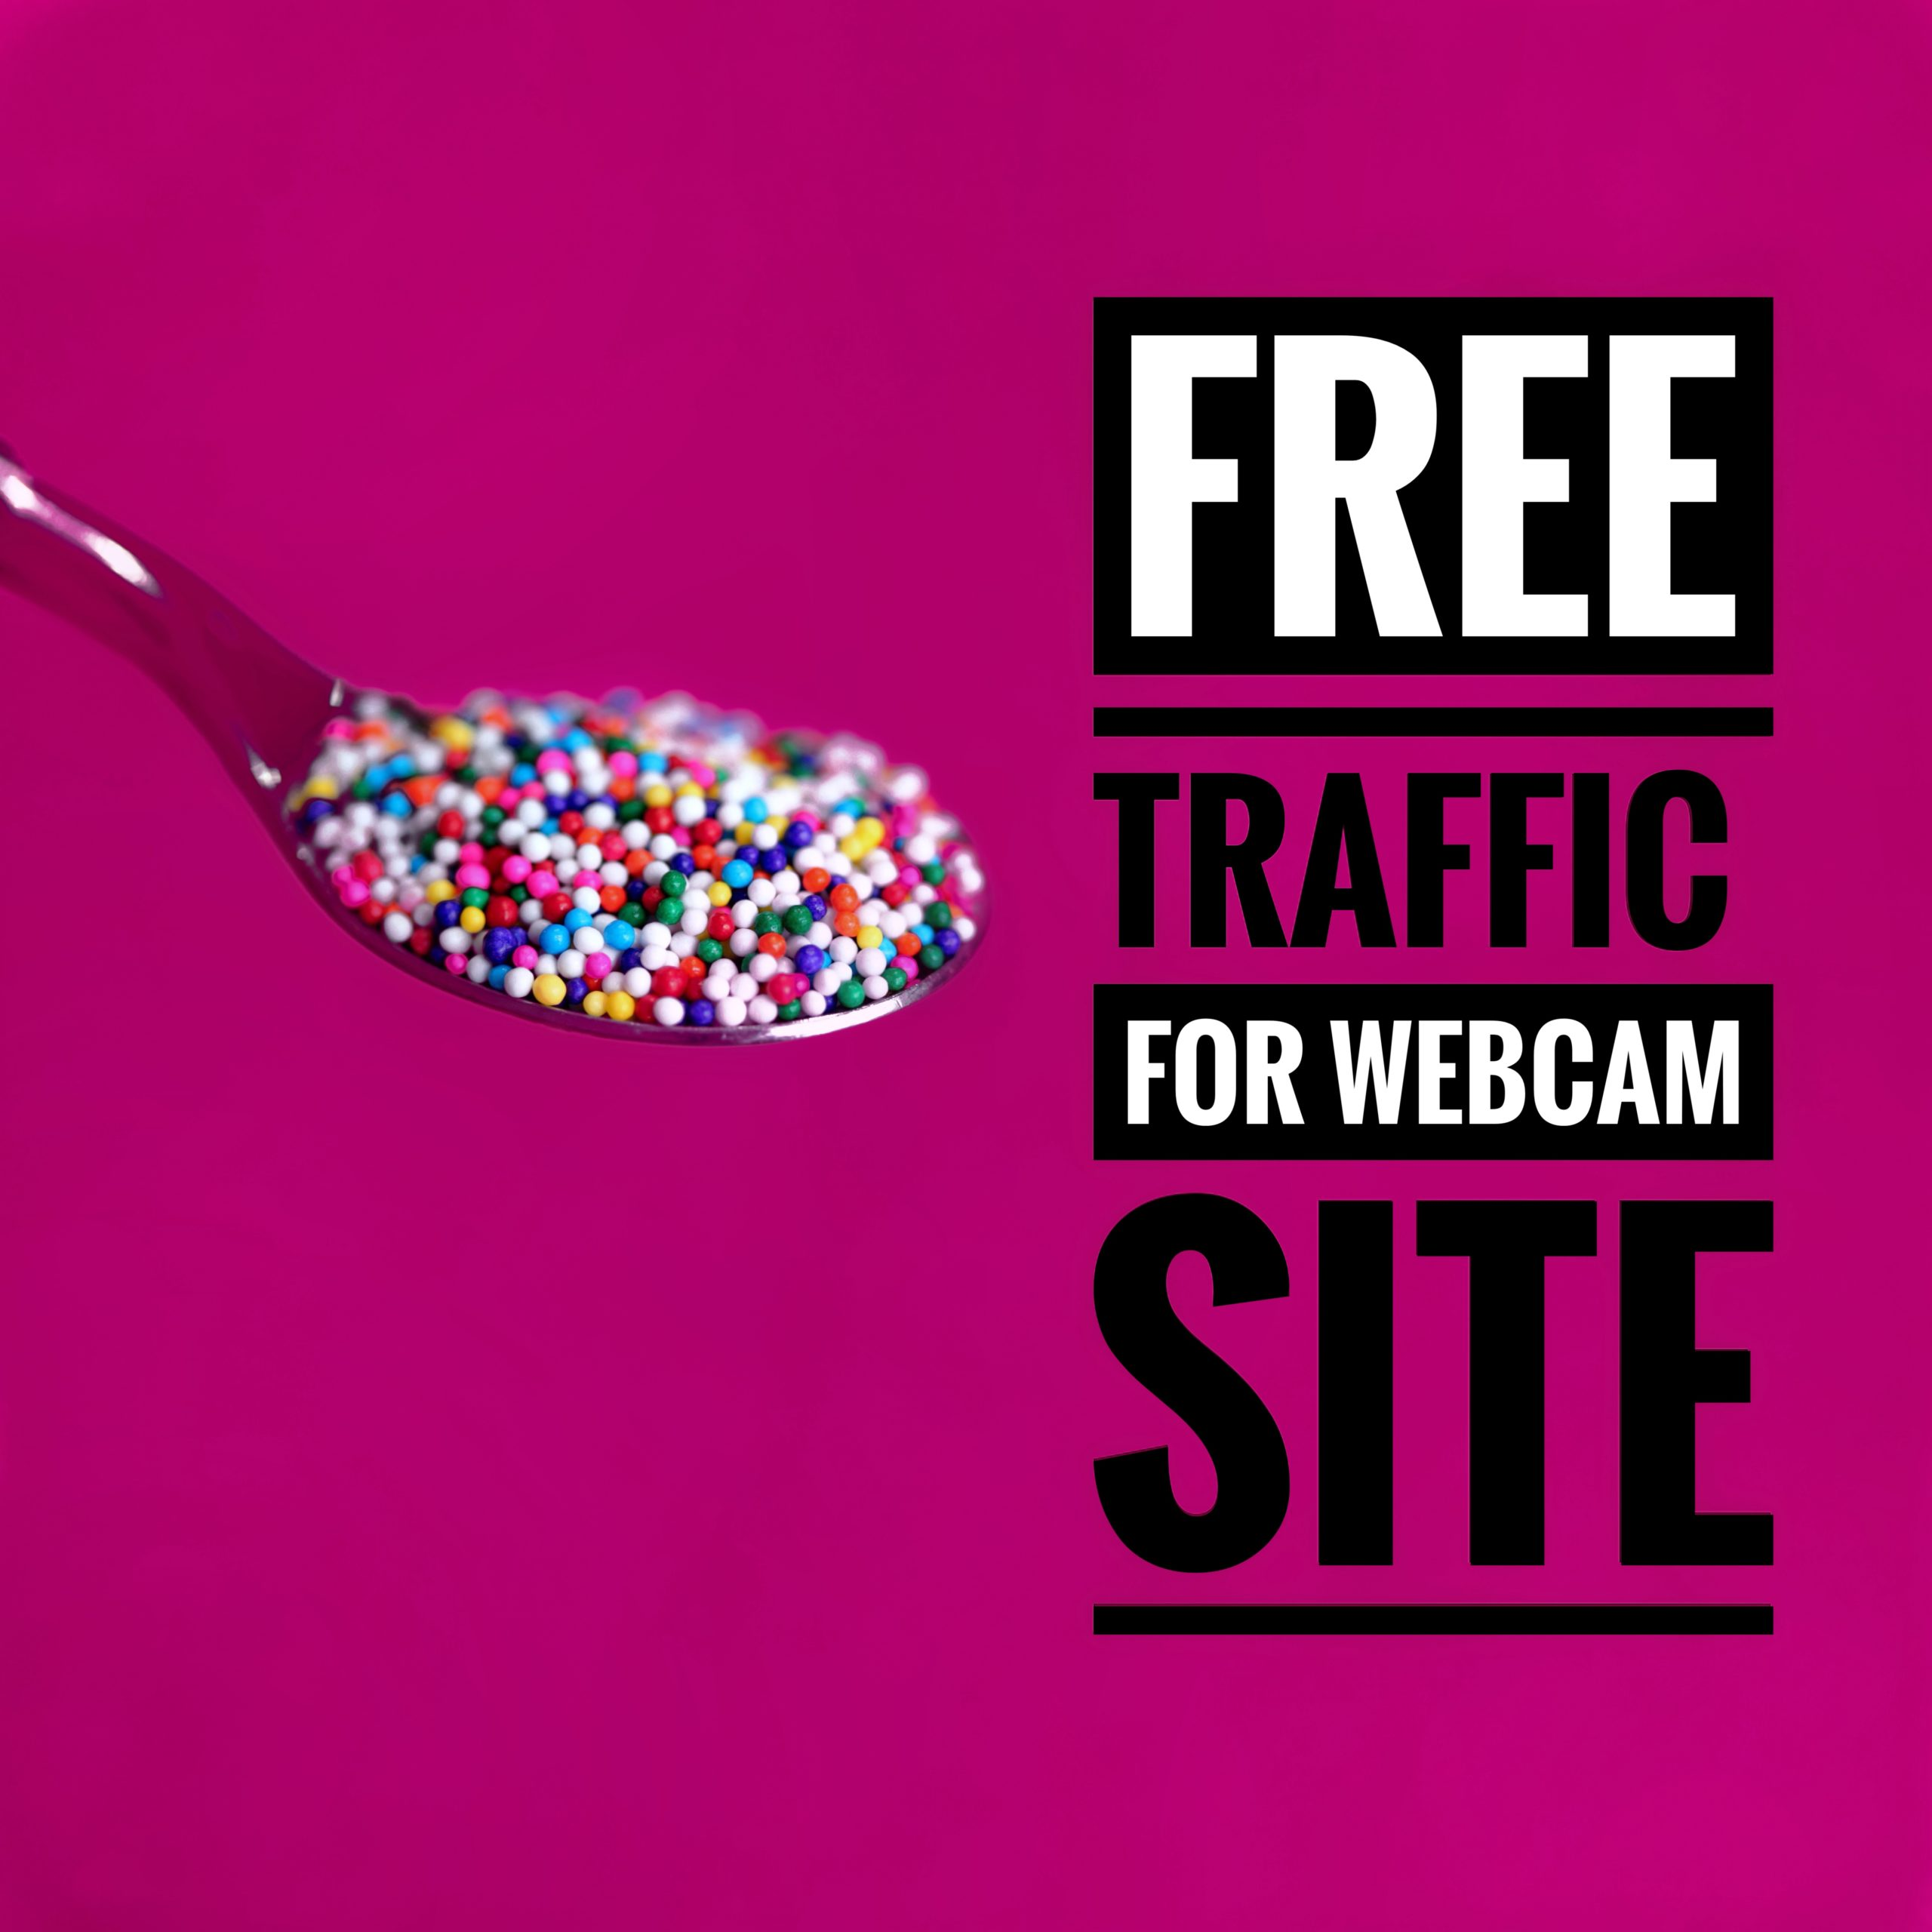 free traffic for webcam site